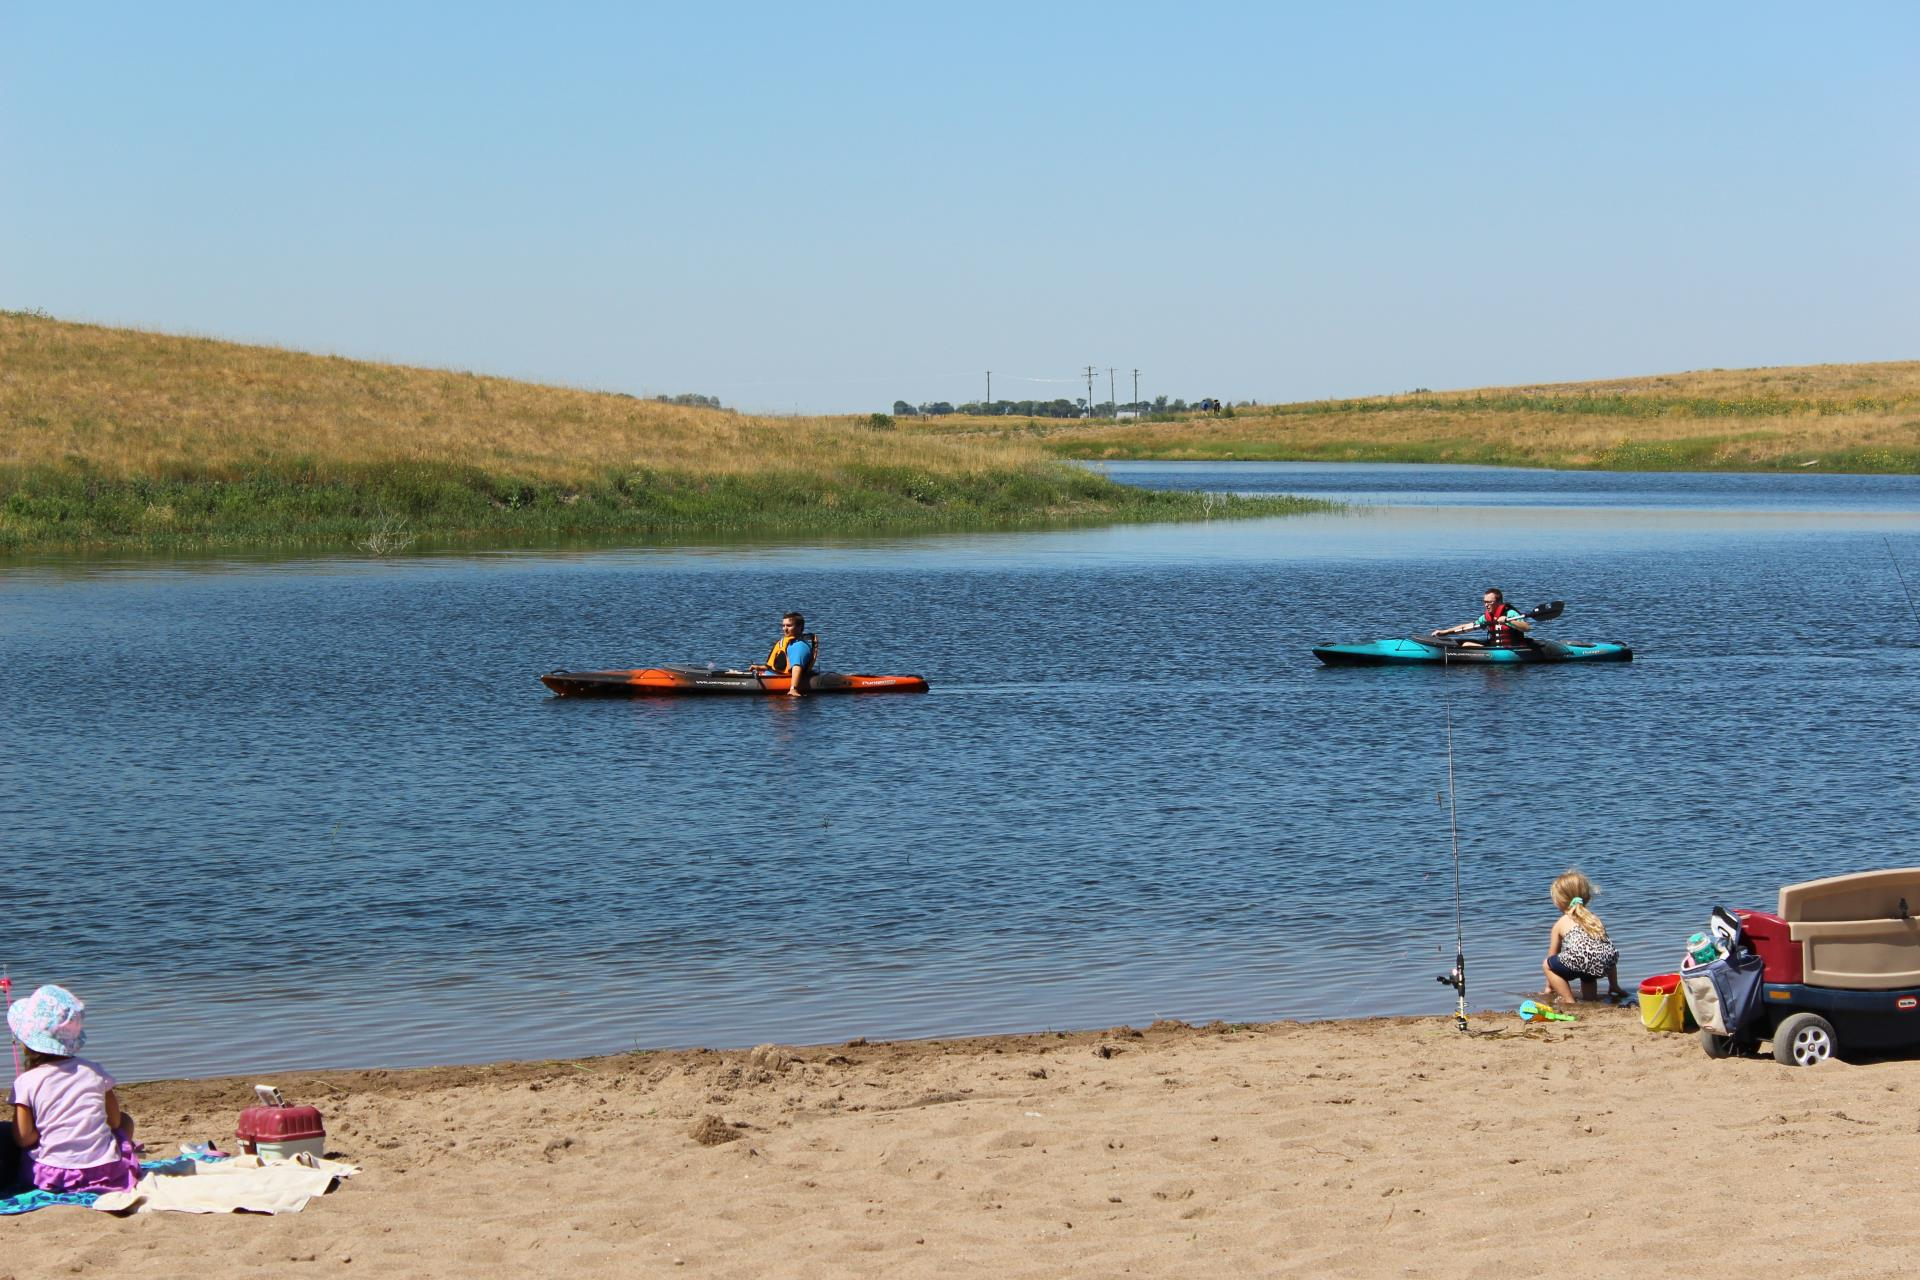 Kayaks and Beach at the Taber Trout Pond 2018